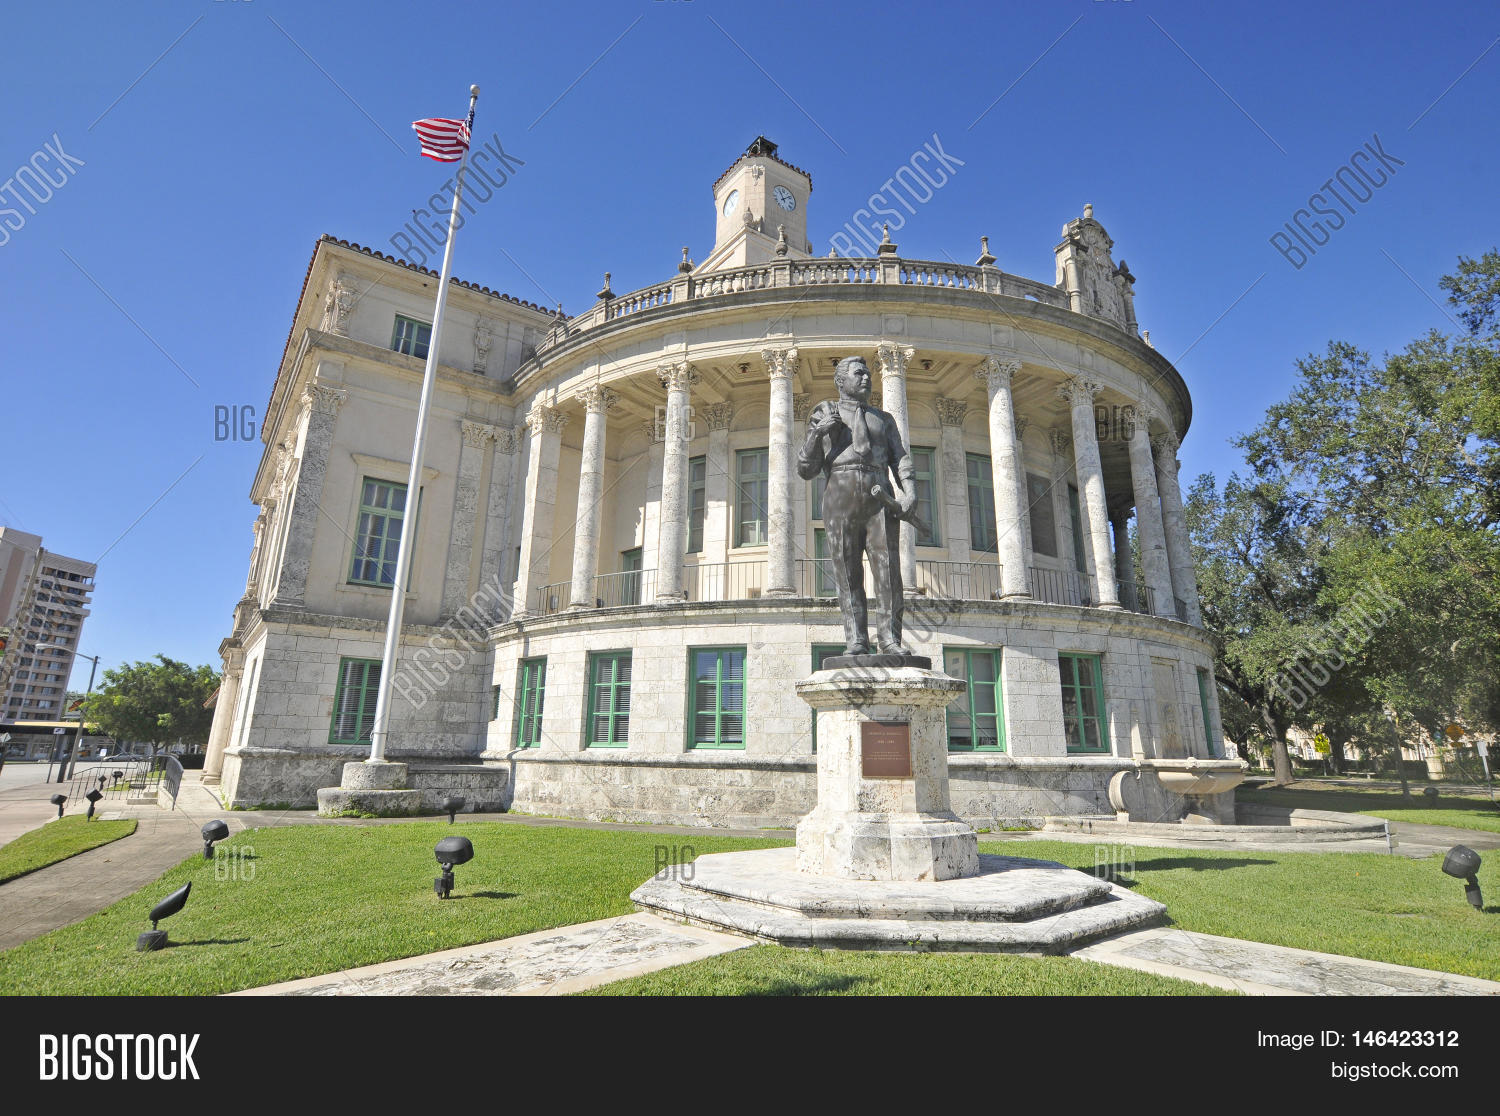 Miami florida usa october 29 image photo bigstock for Historical sites in the usa